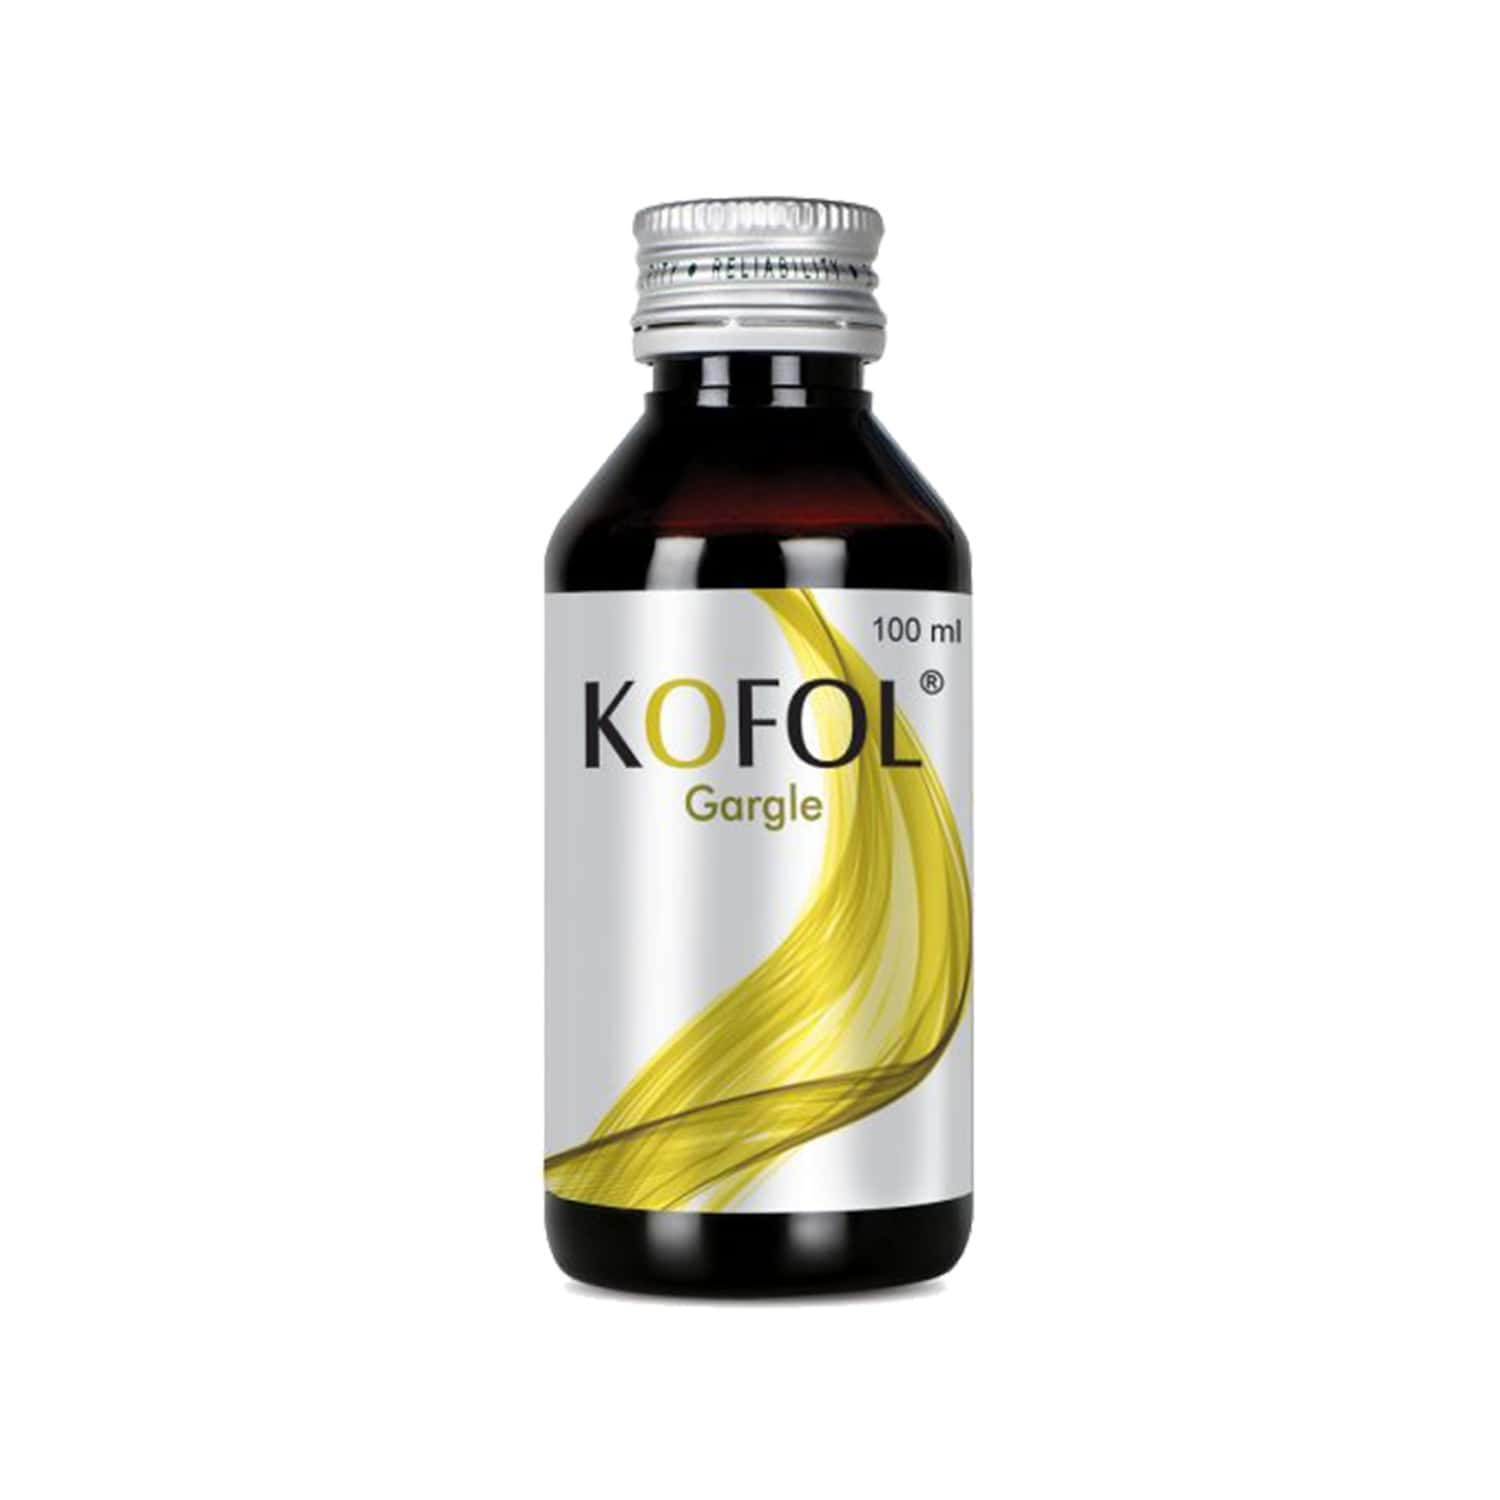 Kofol Gargle Throat Relief Syrup Bottle Of 100 Ml